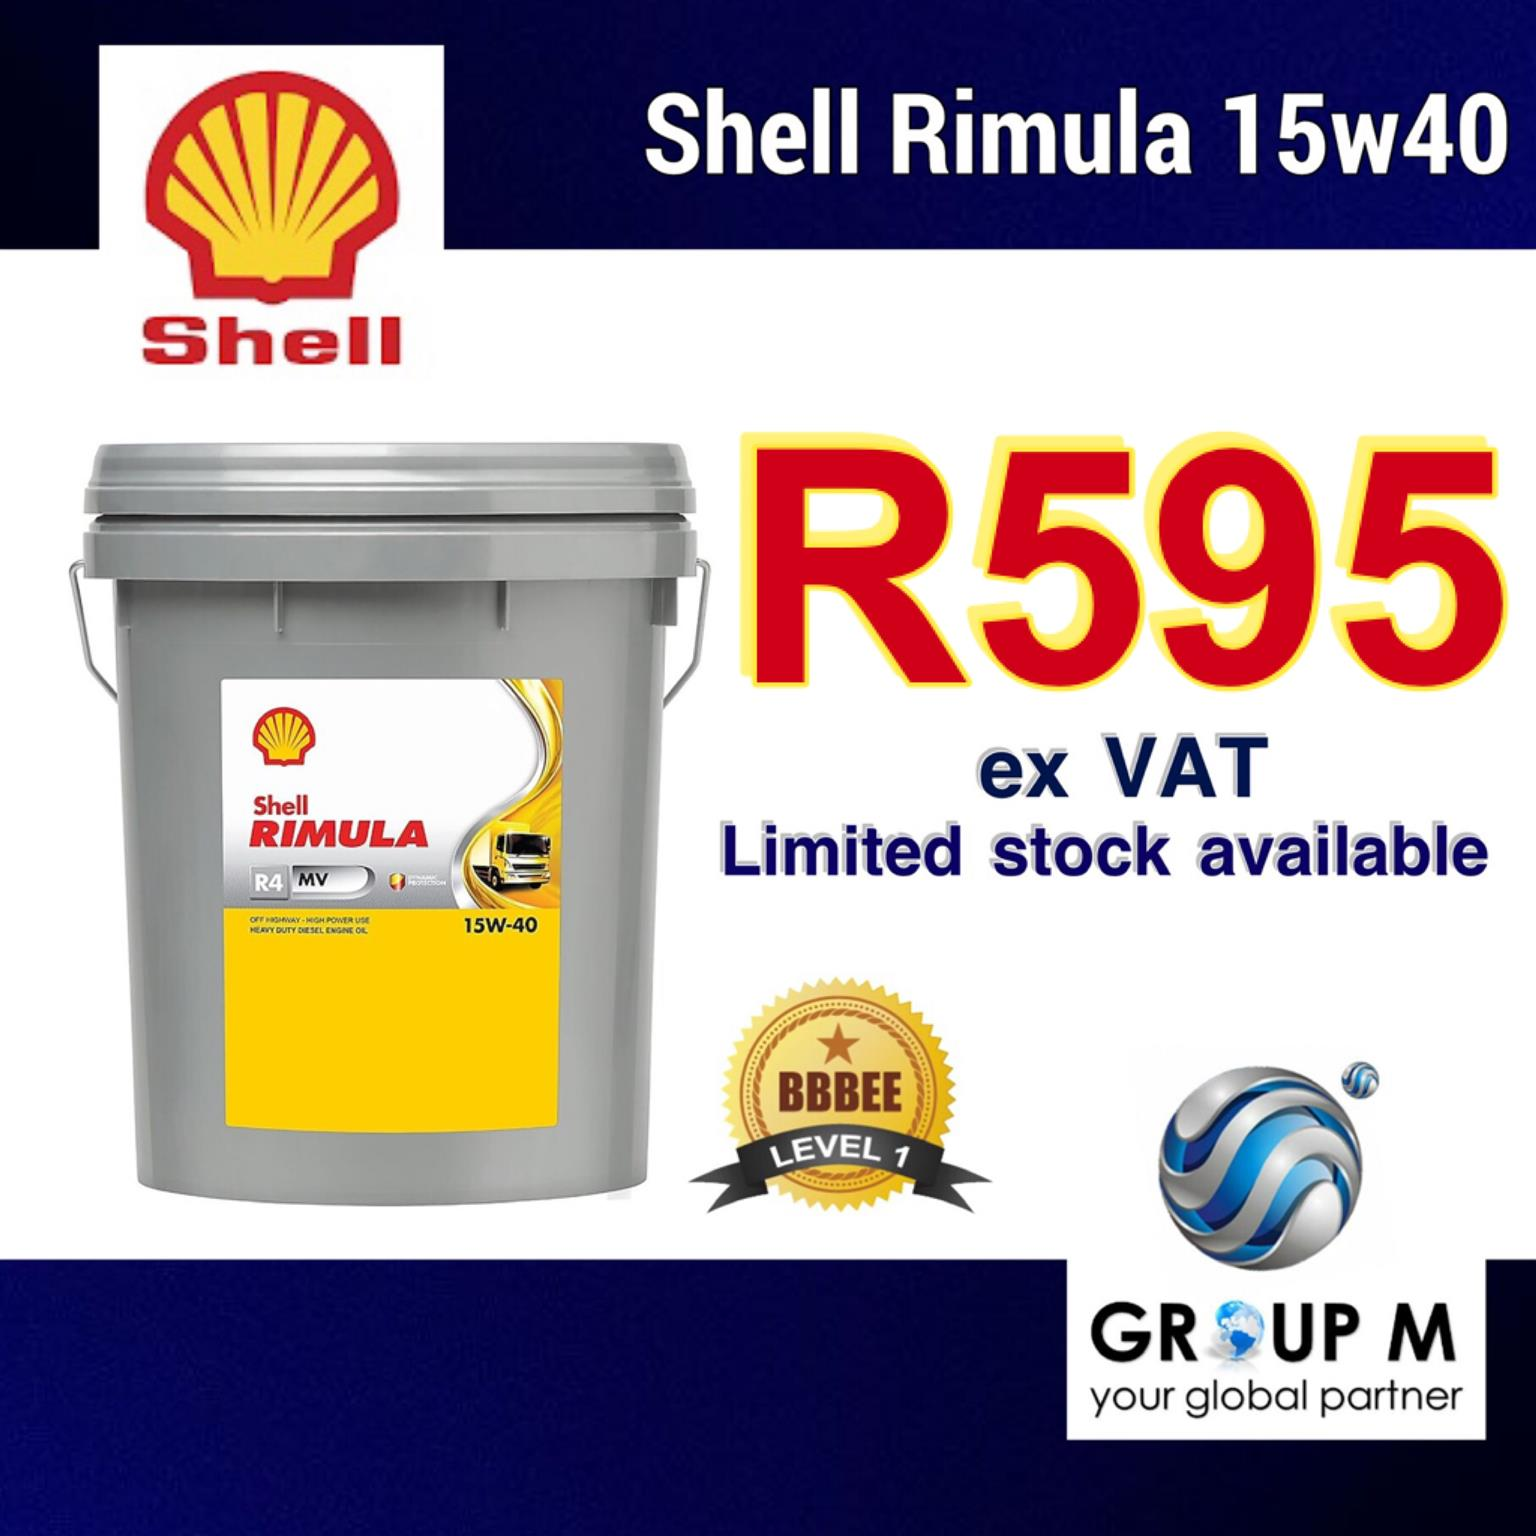 Car Accessories Additives, Oils and Lubricants